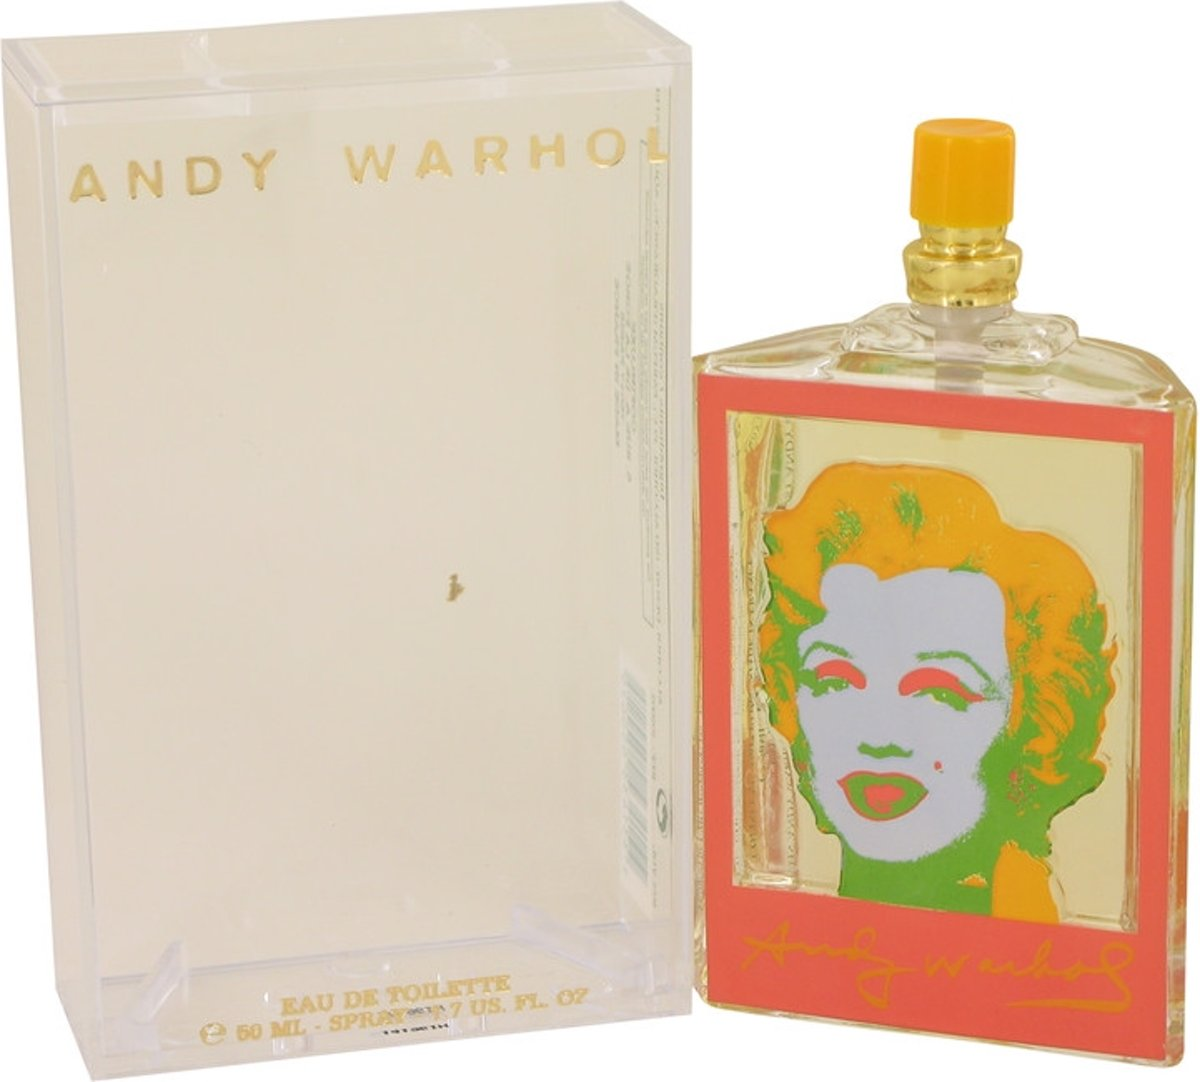 Andy Warhol Andy Warhol Orange eau de toilette spray 50 ml